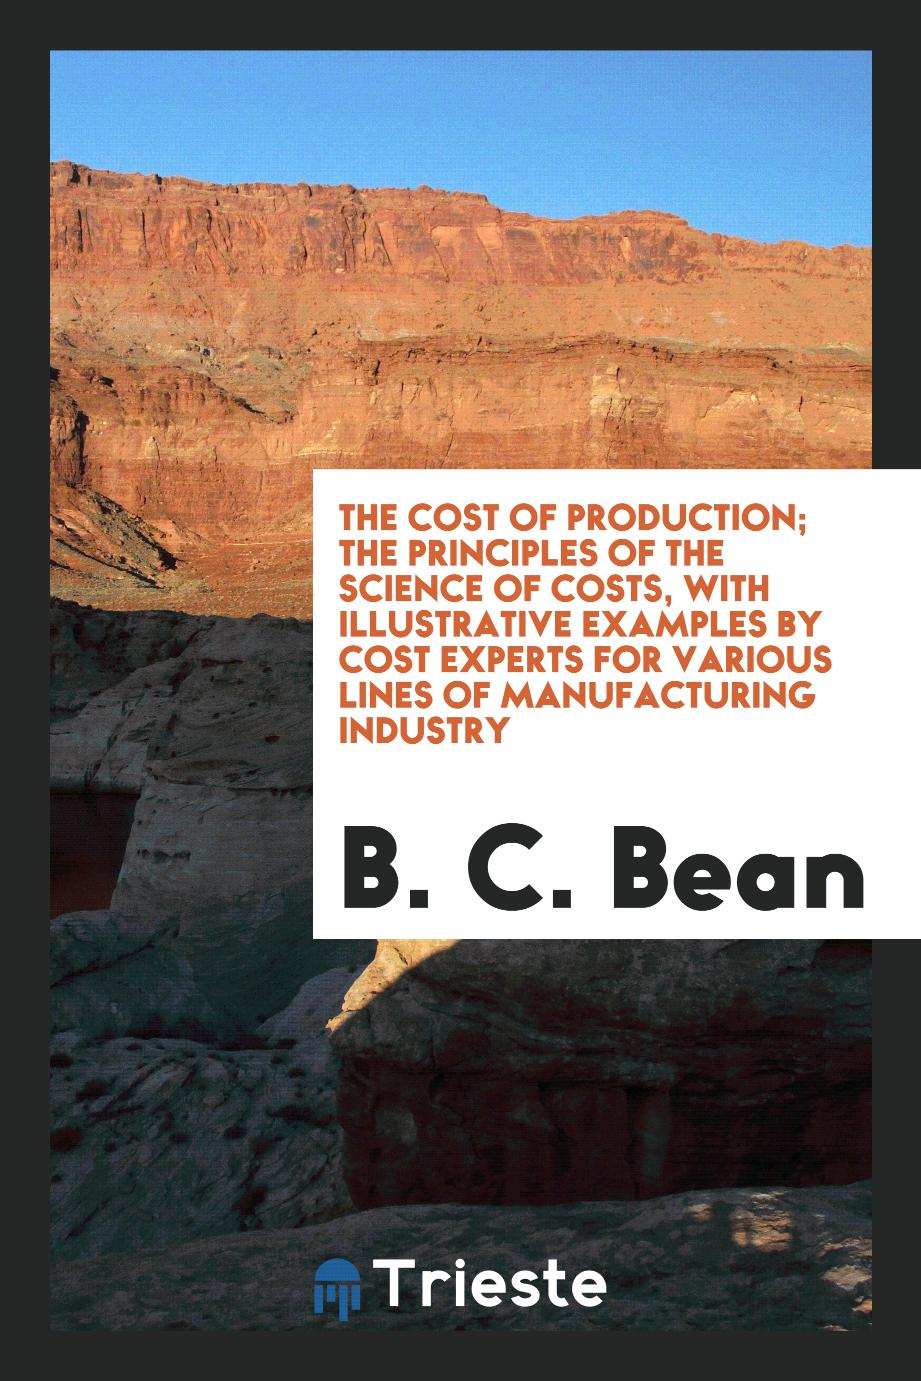 The Cost of Production; The Principles of the Science of Costs, with Illustrative Examples by Cost Experts for Various Lines of Manufacturing Industry